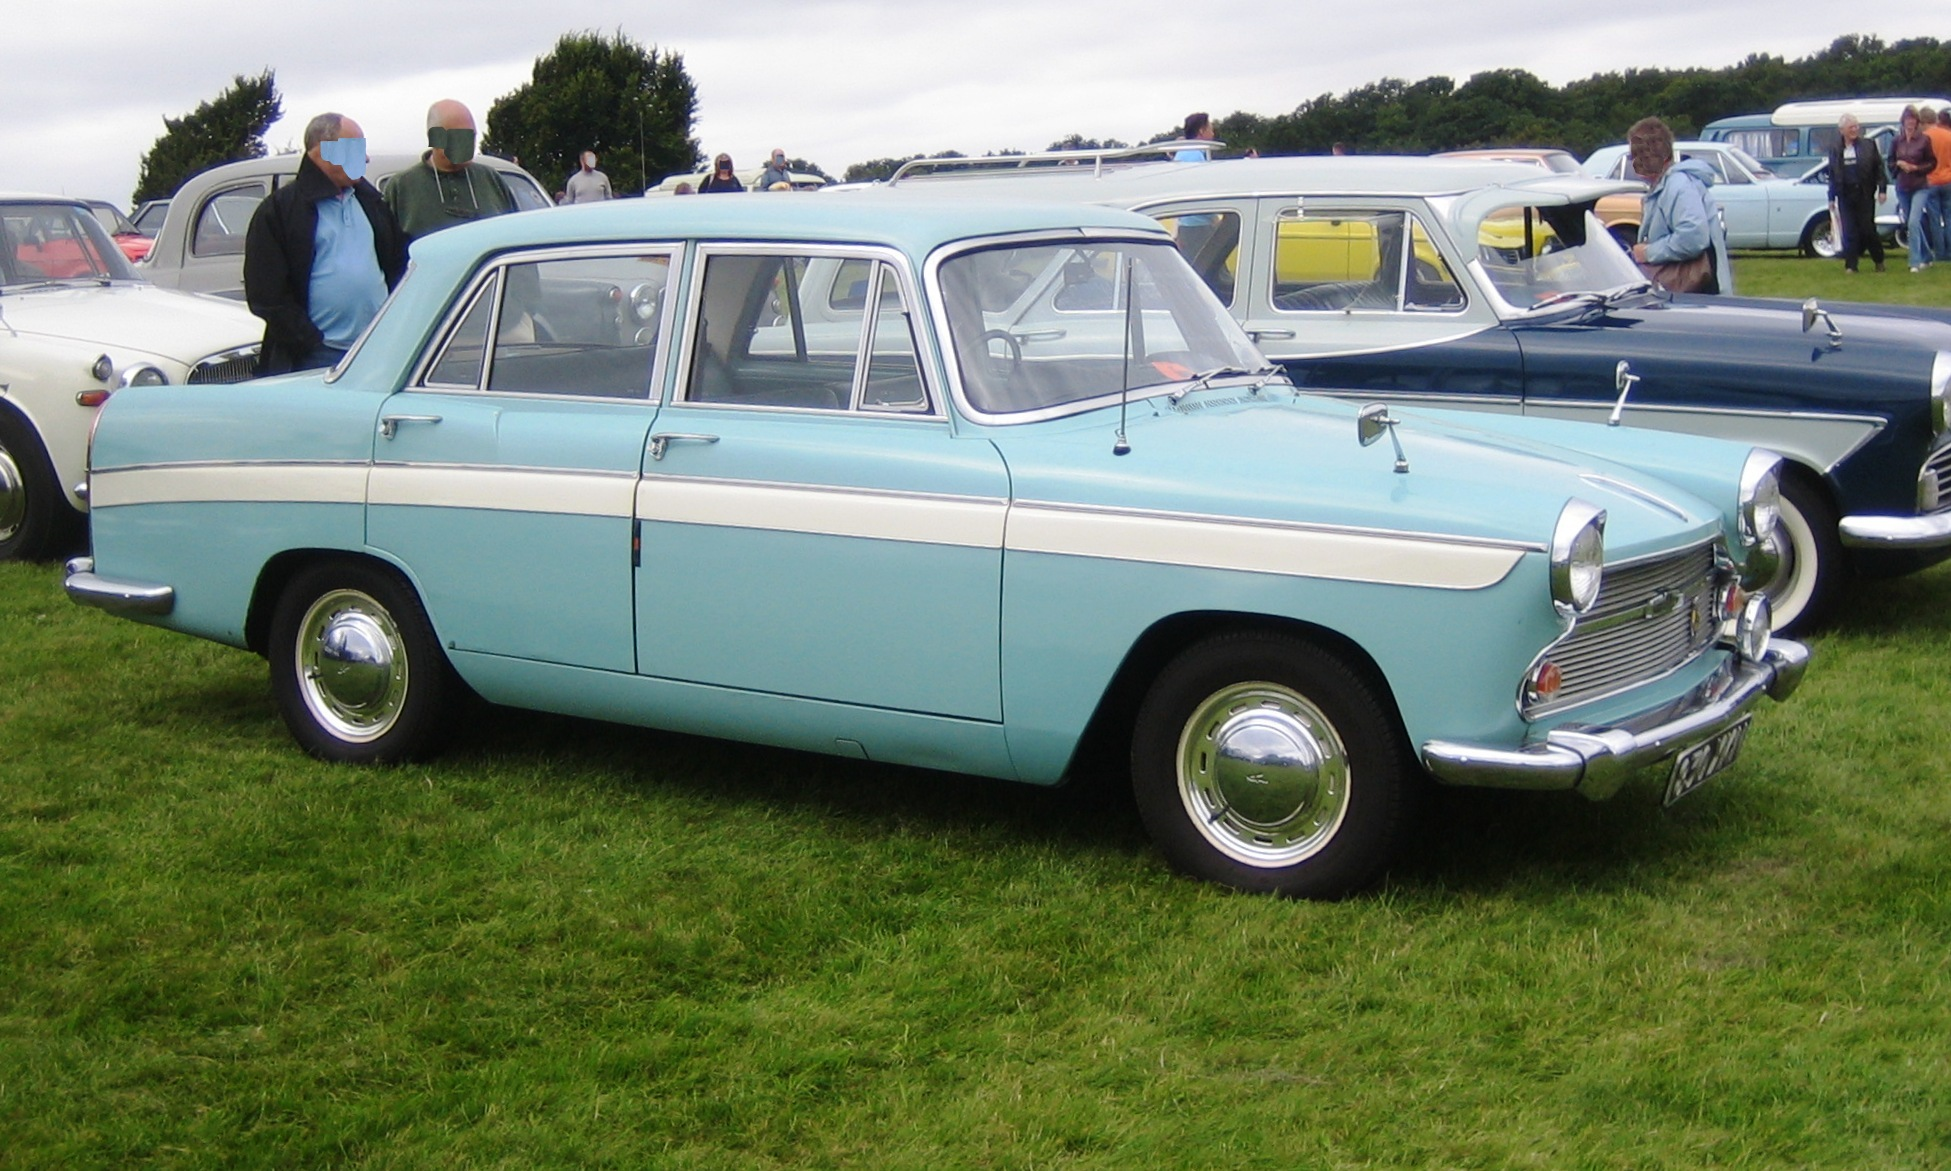 File:Austin Cambridge A60 ca 1964.jpg - Wikimedia Commons